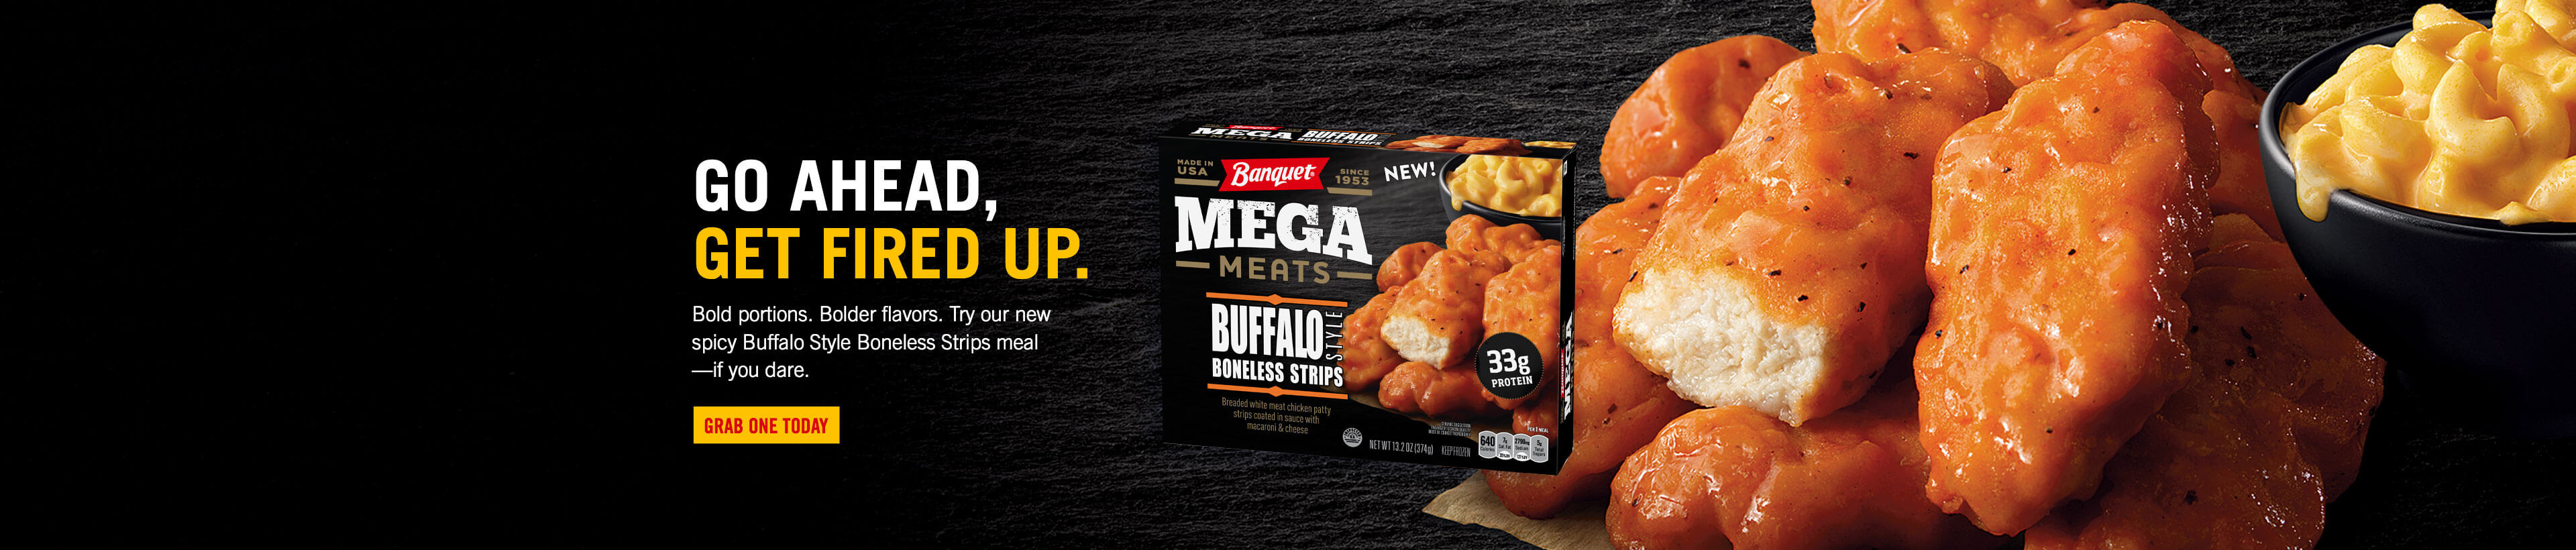 Go ahead, get fired up. Bold portions. Bolder flavors. Try our new spicy Buffalo Style Boneless Strips Mega Meats meal—if you dare.